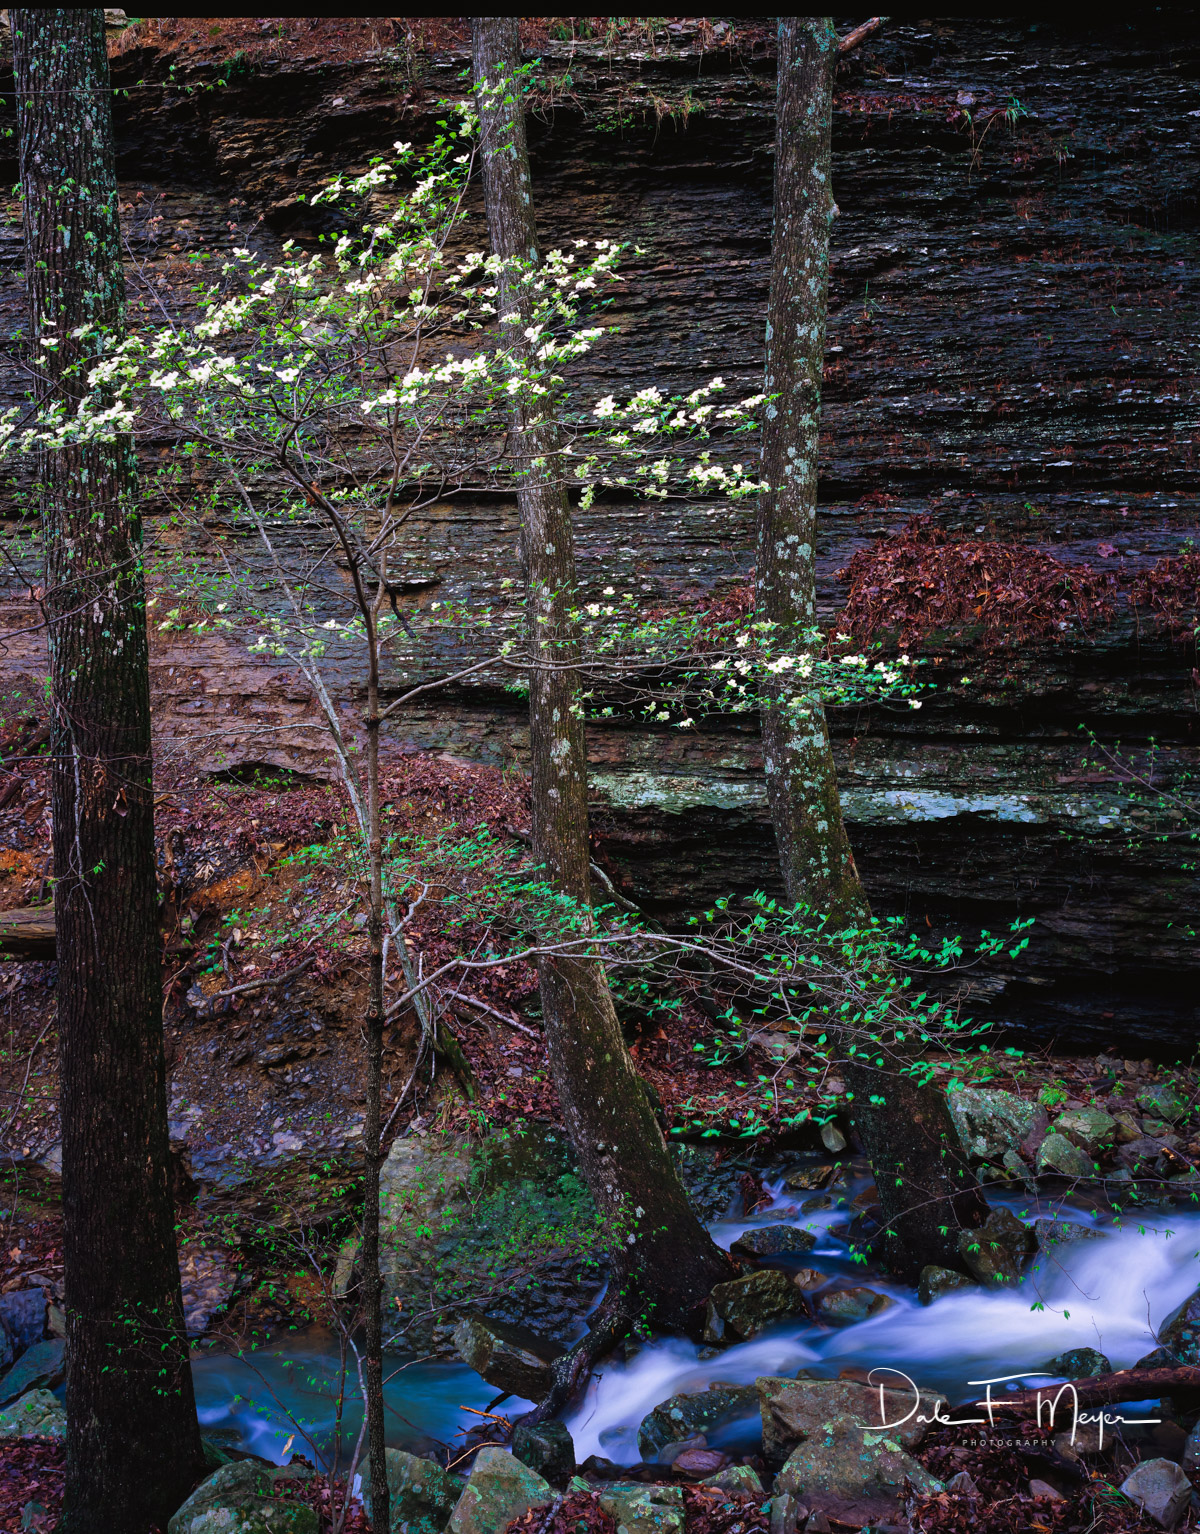 4X5 Fuji 50 Slide Film, Large Format, Ravine, Shale Rock, Stream, Valley, bluff, dogwood, spring 2009, water flow, photo